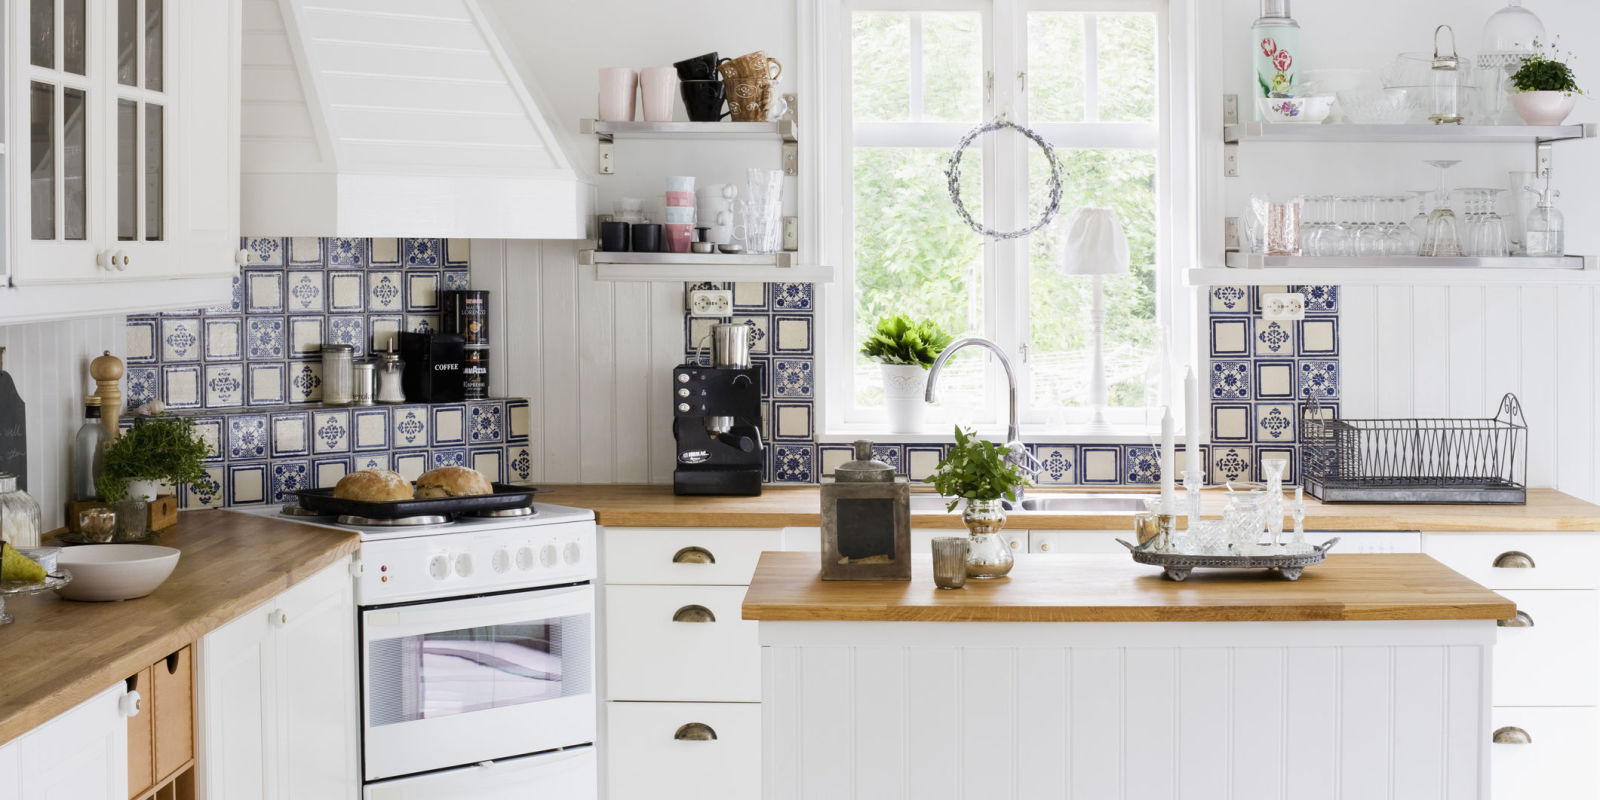 5 steps to creating a scandinavian kitchen - Great swedish kitchen design ideas for your home ...